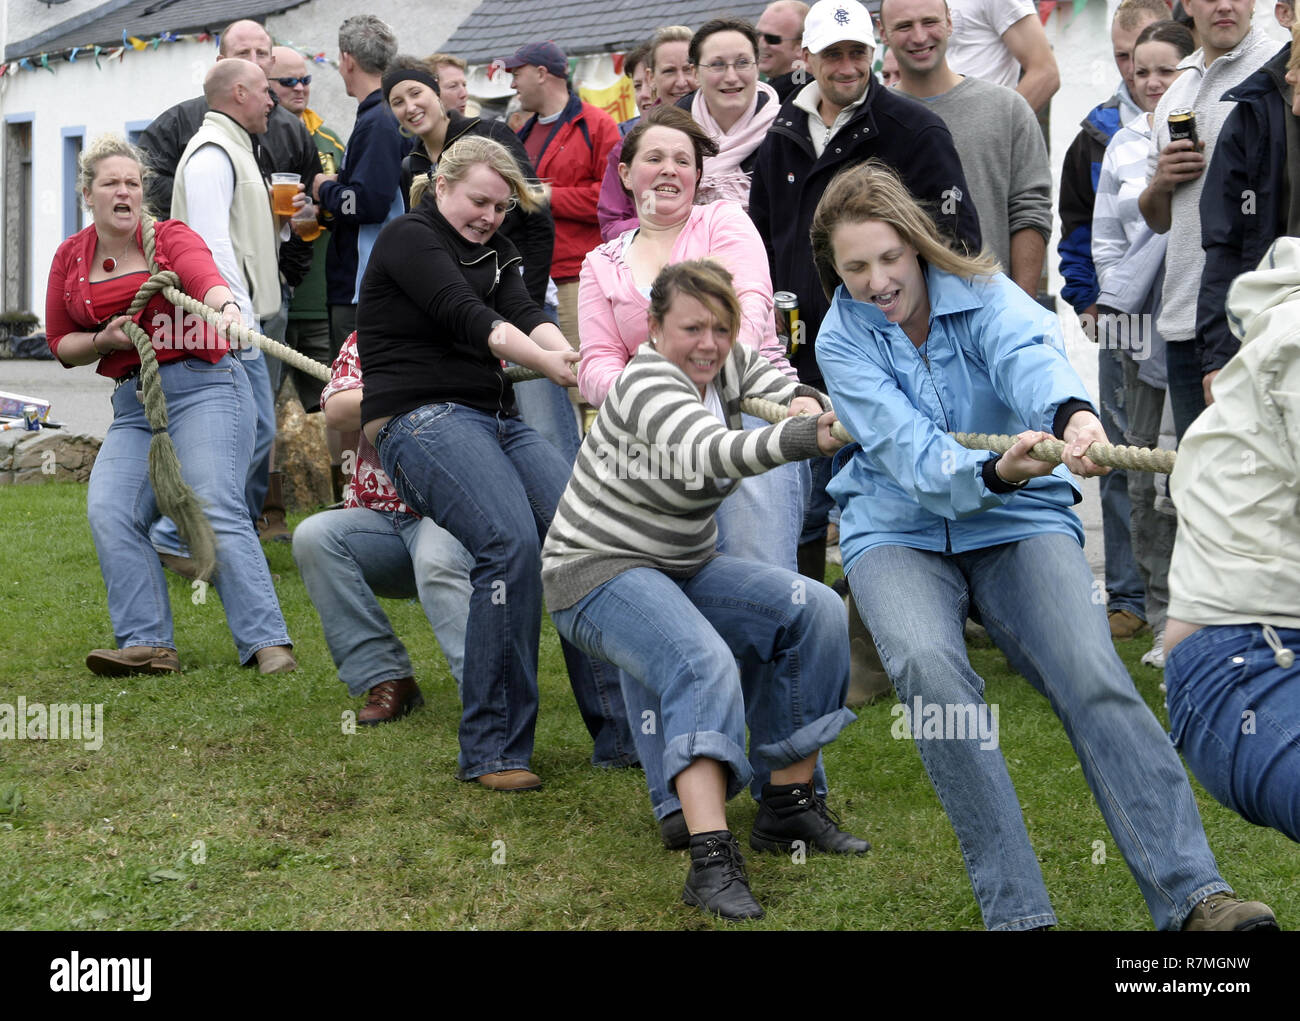 The women take the strain at the tug of war in the small, remote, hamlet of Knoydart and their annual gala day. Knoydart sits on a peninsula in the north west highlands of Scotland and can only be reached by boat or on foot. - Stock Image